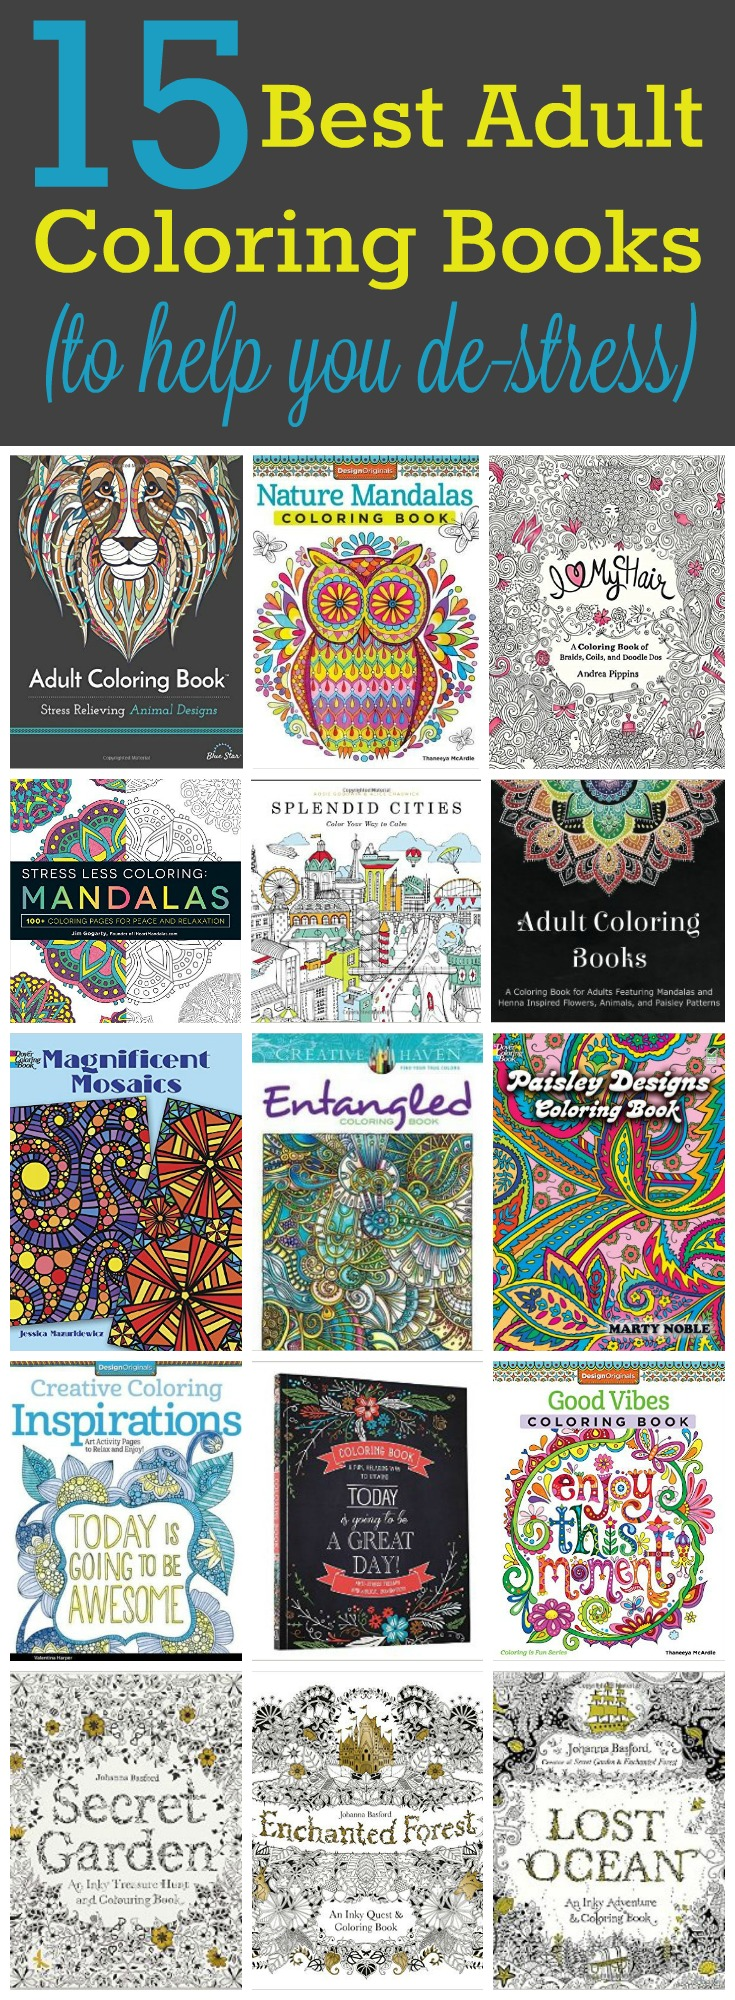 15 Best Adult Coloring Books